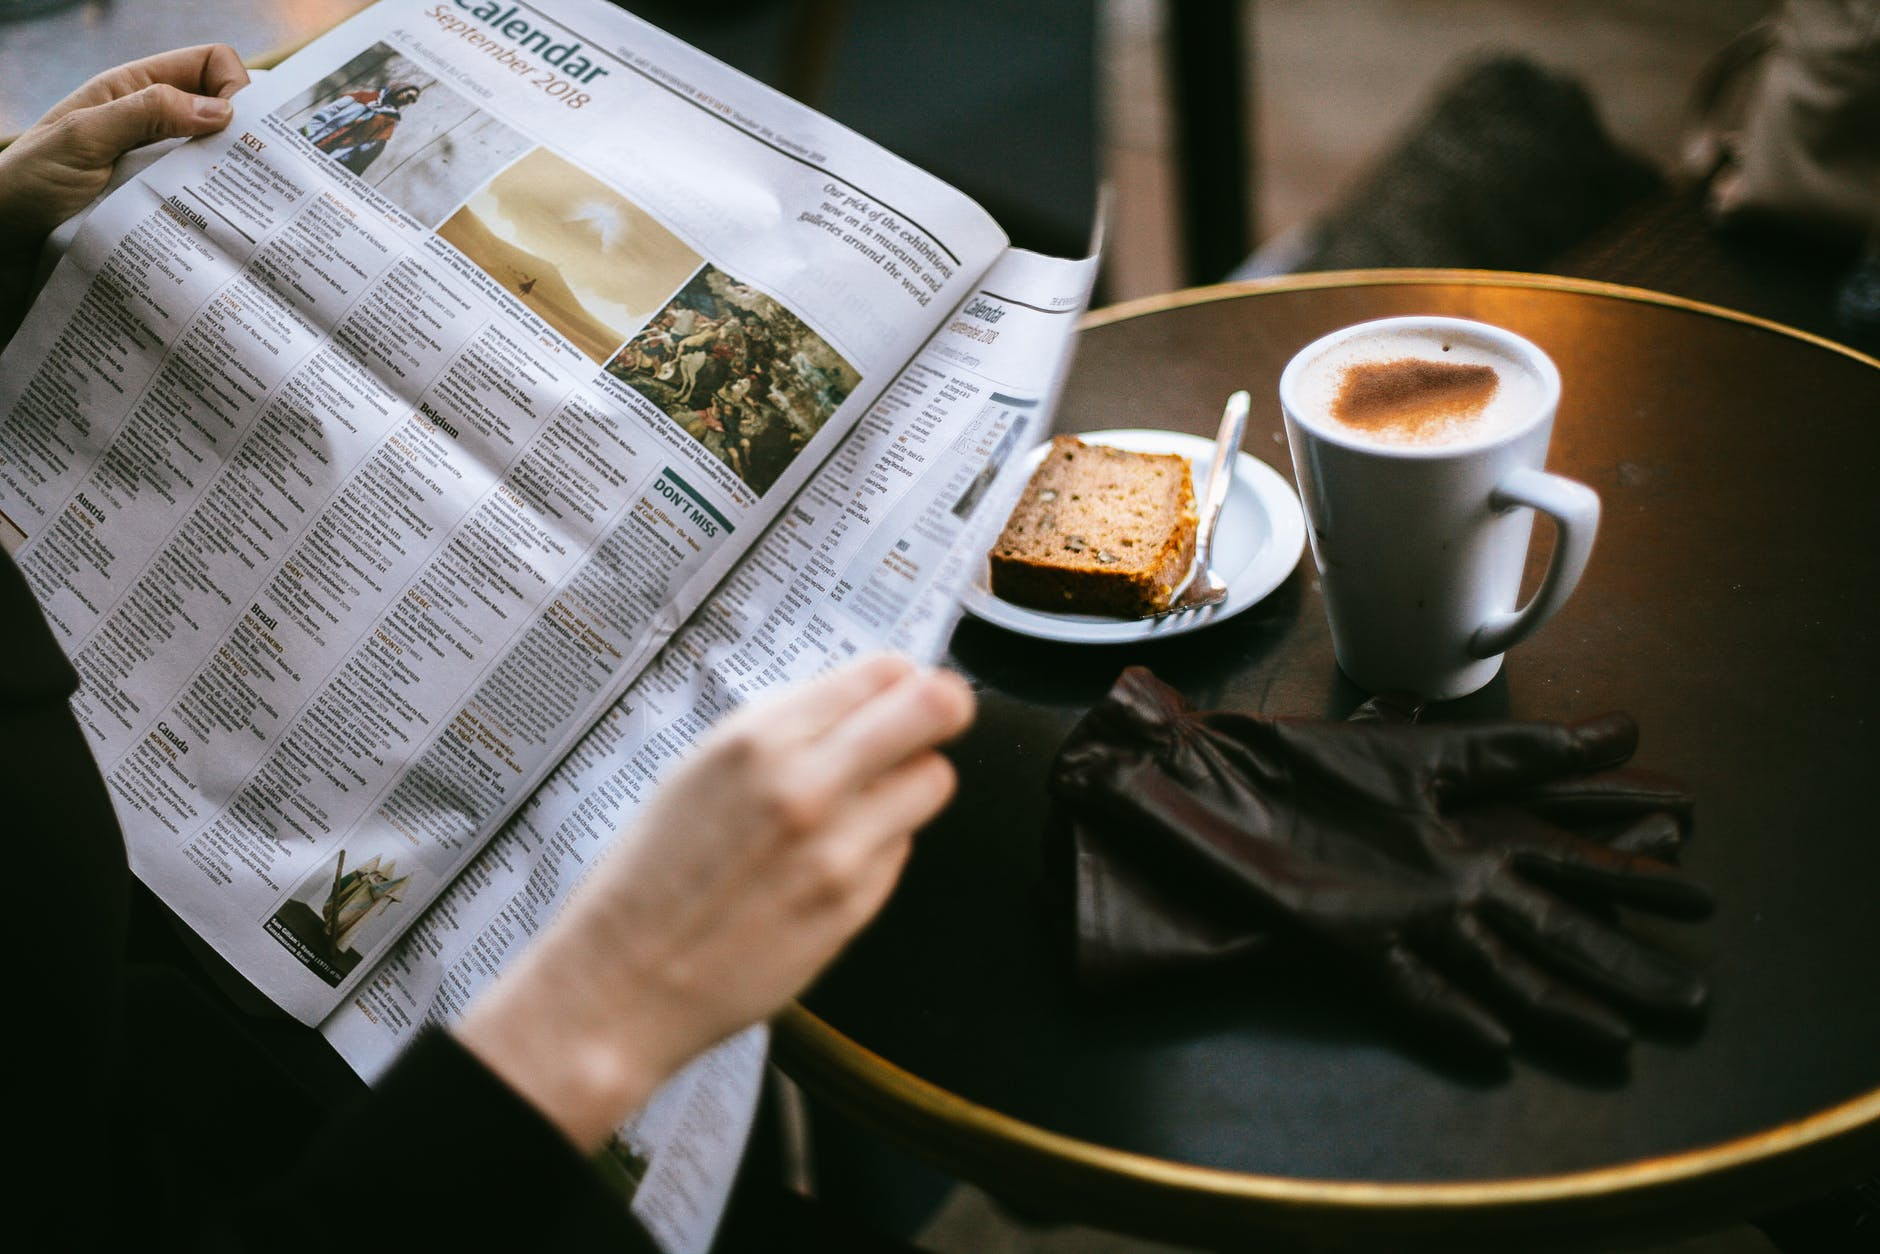 Morning papers | Source: Pexels